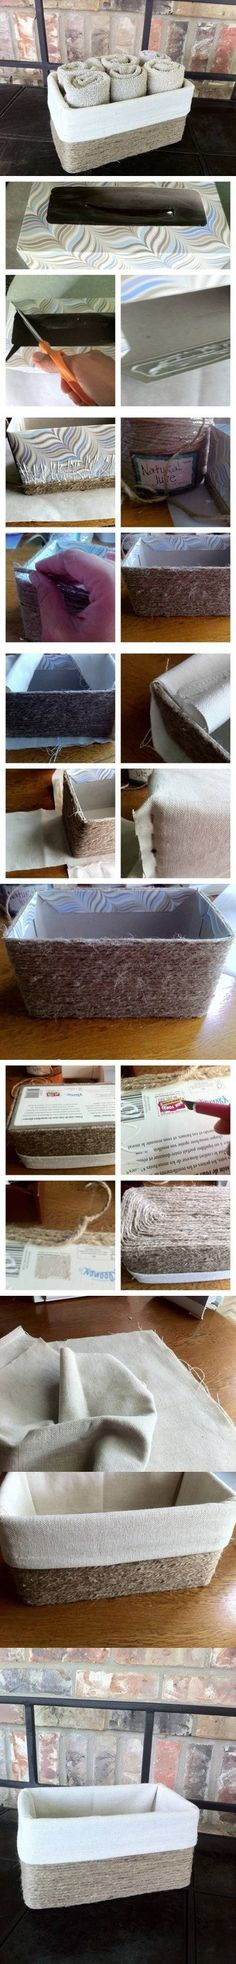 DIY Jute Basket from Cardboard Box Pinterest blocked the link usefuldiy.com/diy-jute-basket-from-cardboard-box/